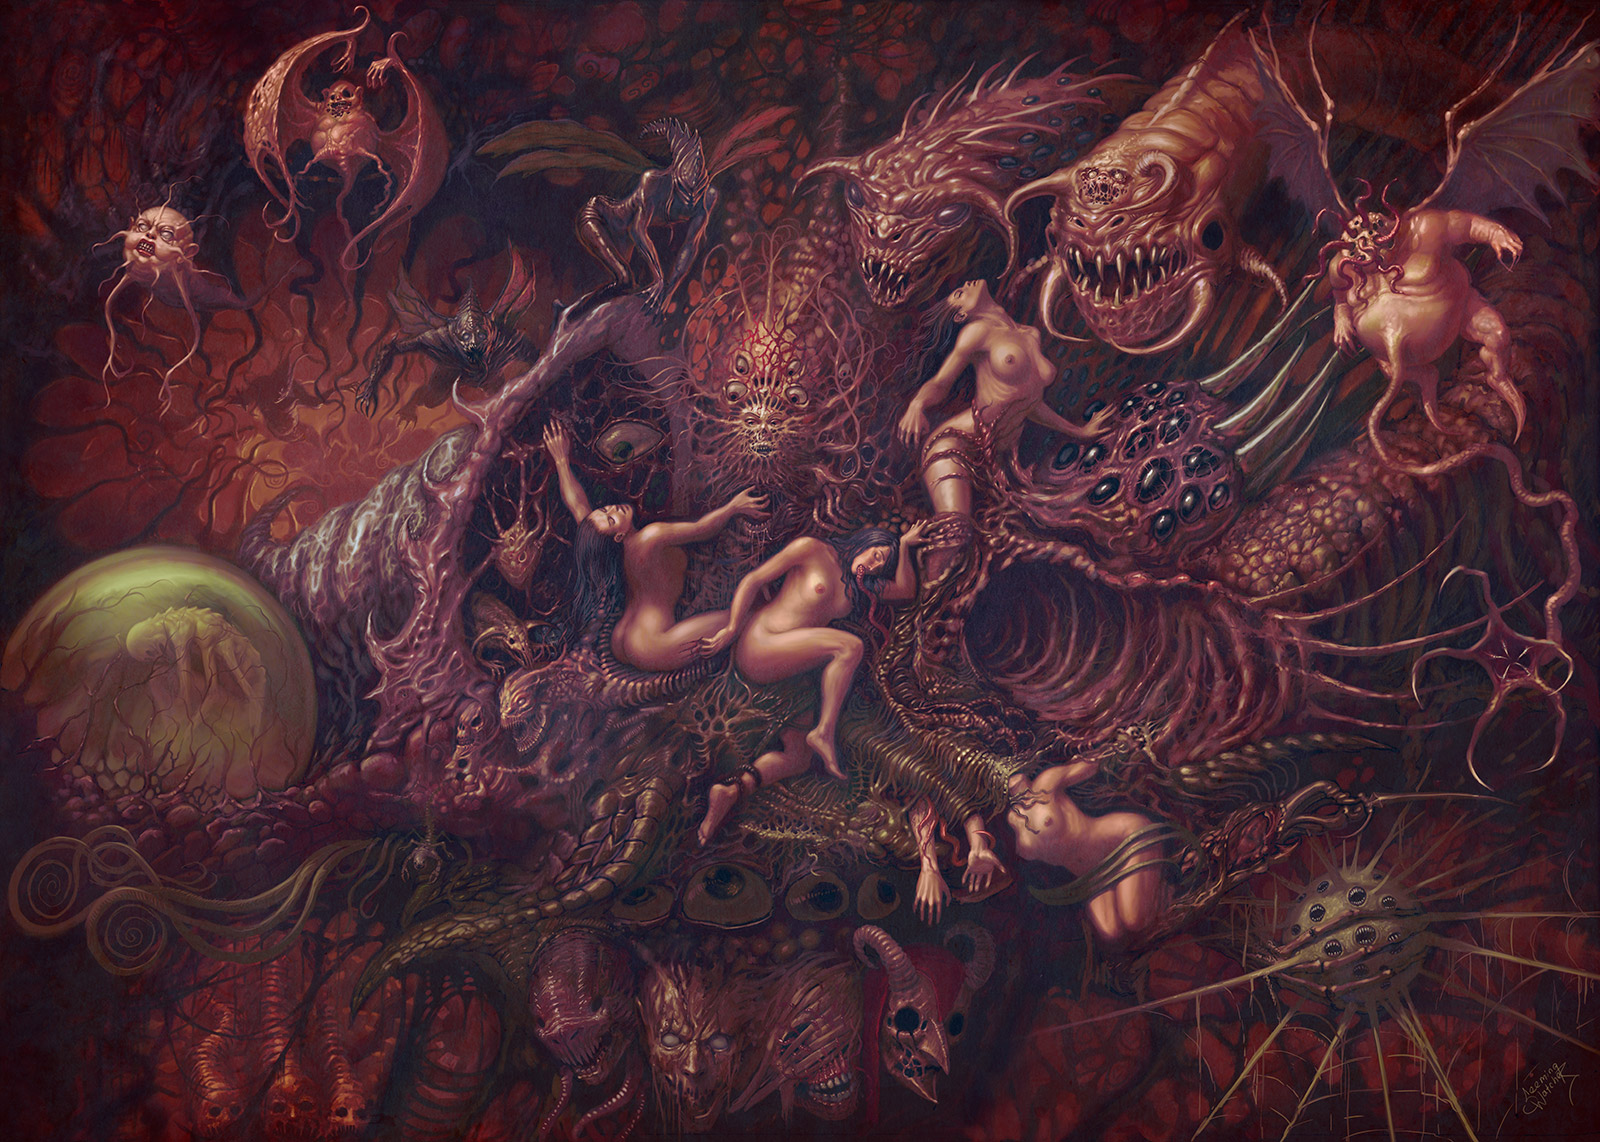 the_great_devourment_by_xeeming-d56jzyn